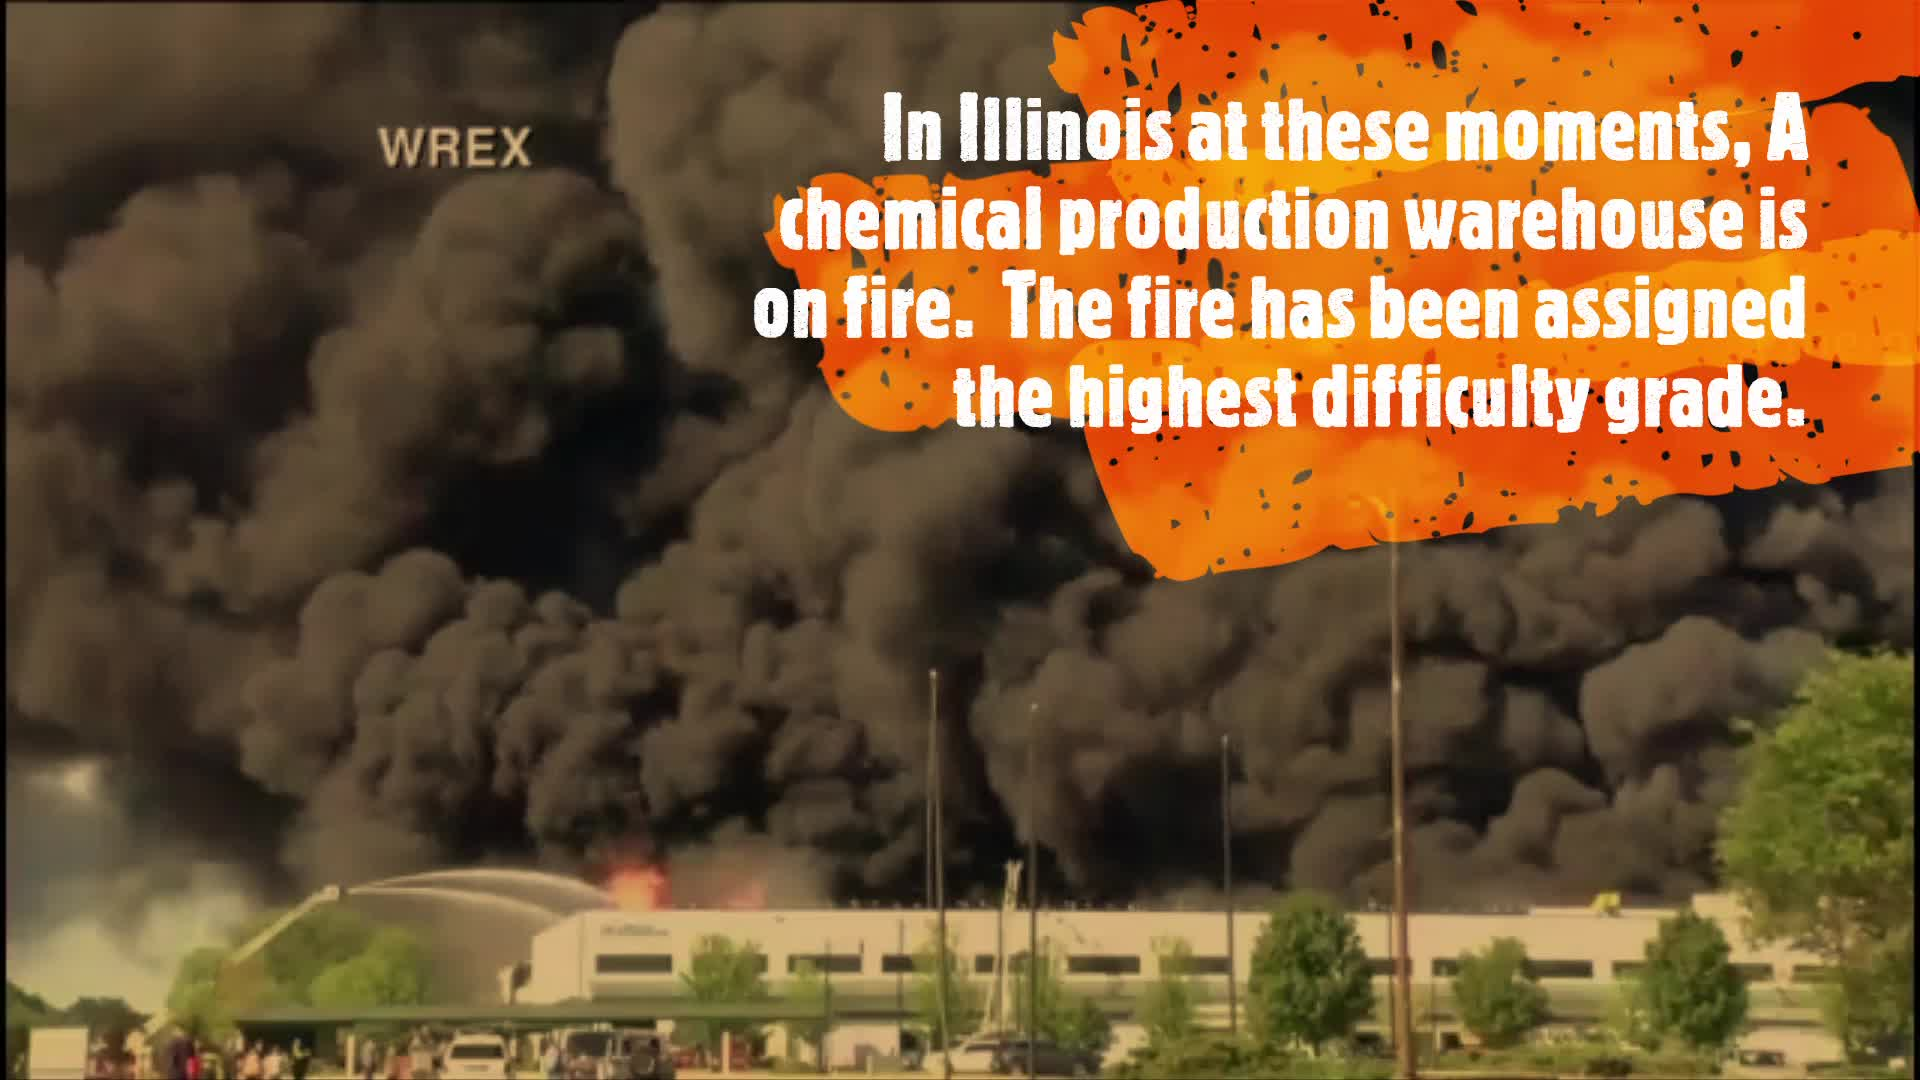 In Illinois at these moments, A chemical production warehouse is on fire